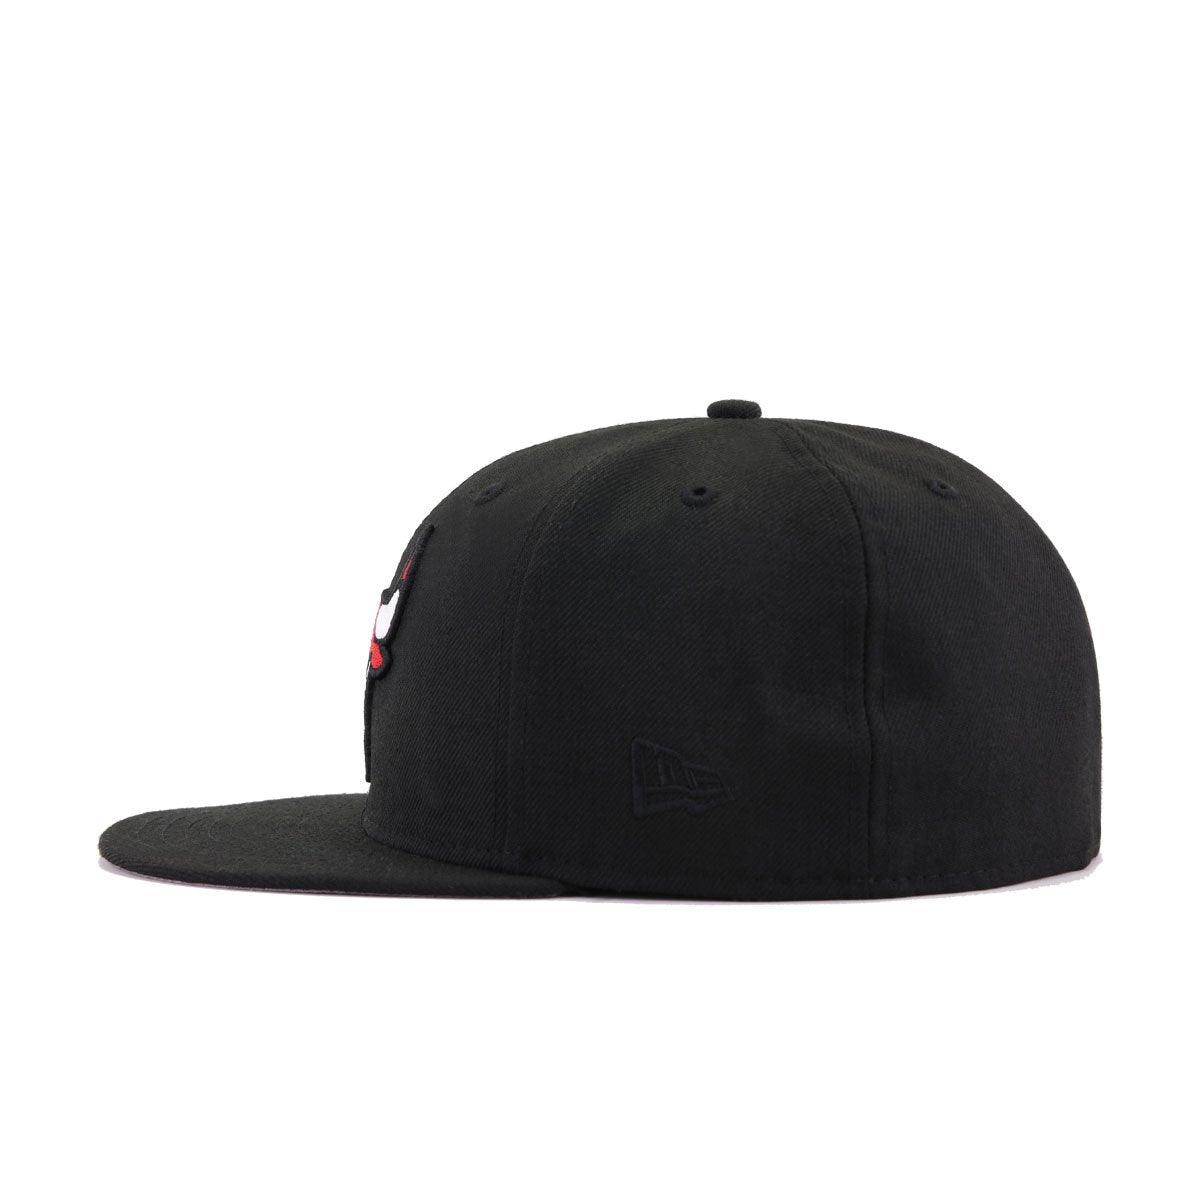 Chicago Bulls Black New Era 59Fifty Fitted